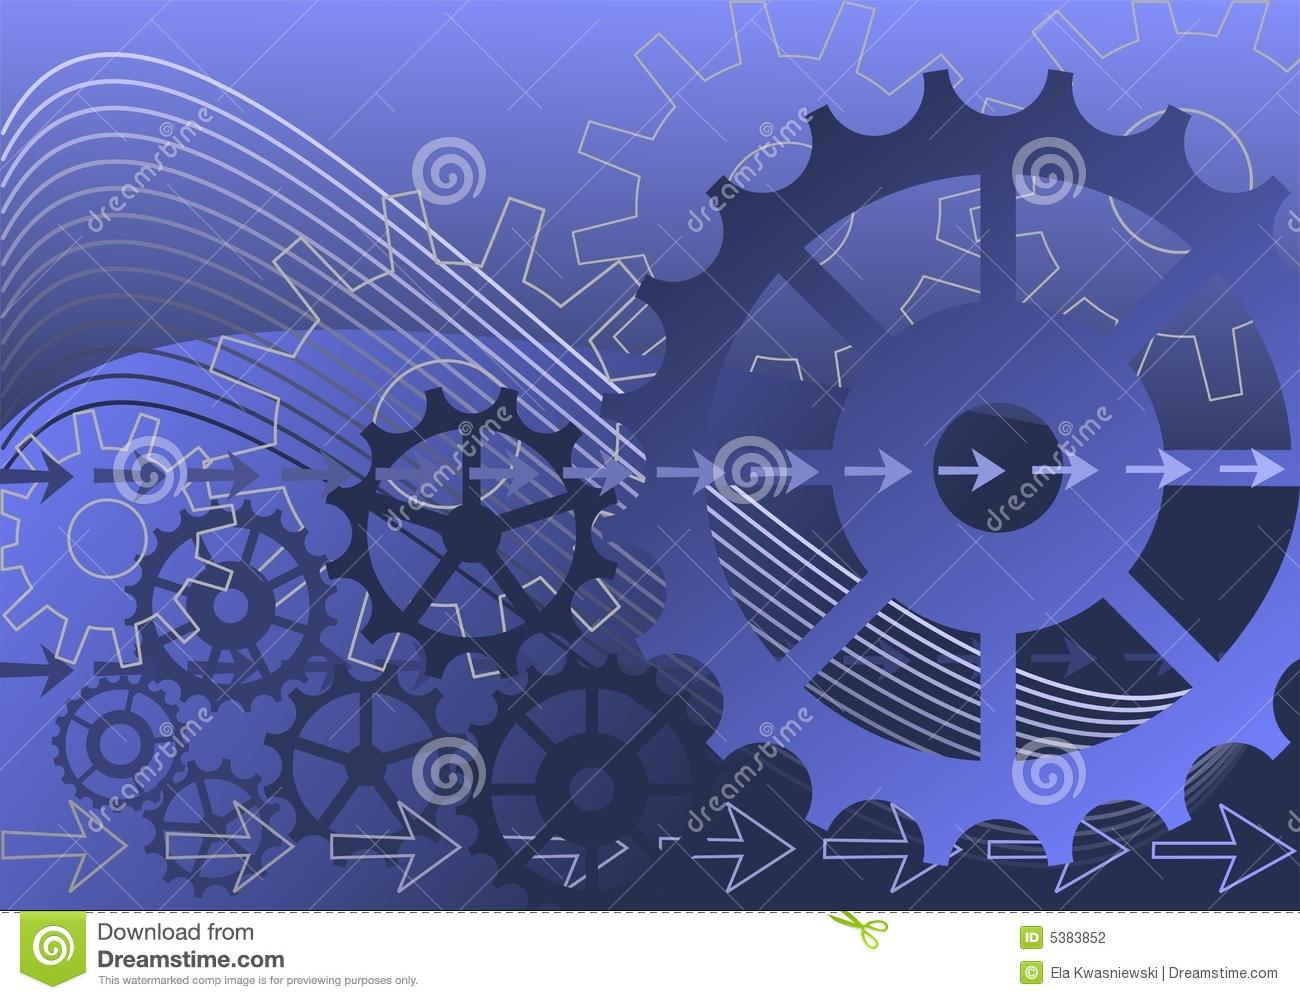 Mechanical Engineering Background images in Collection